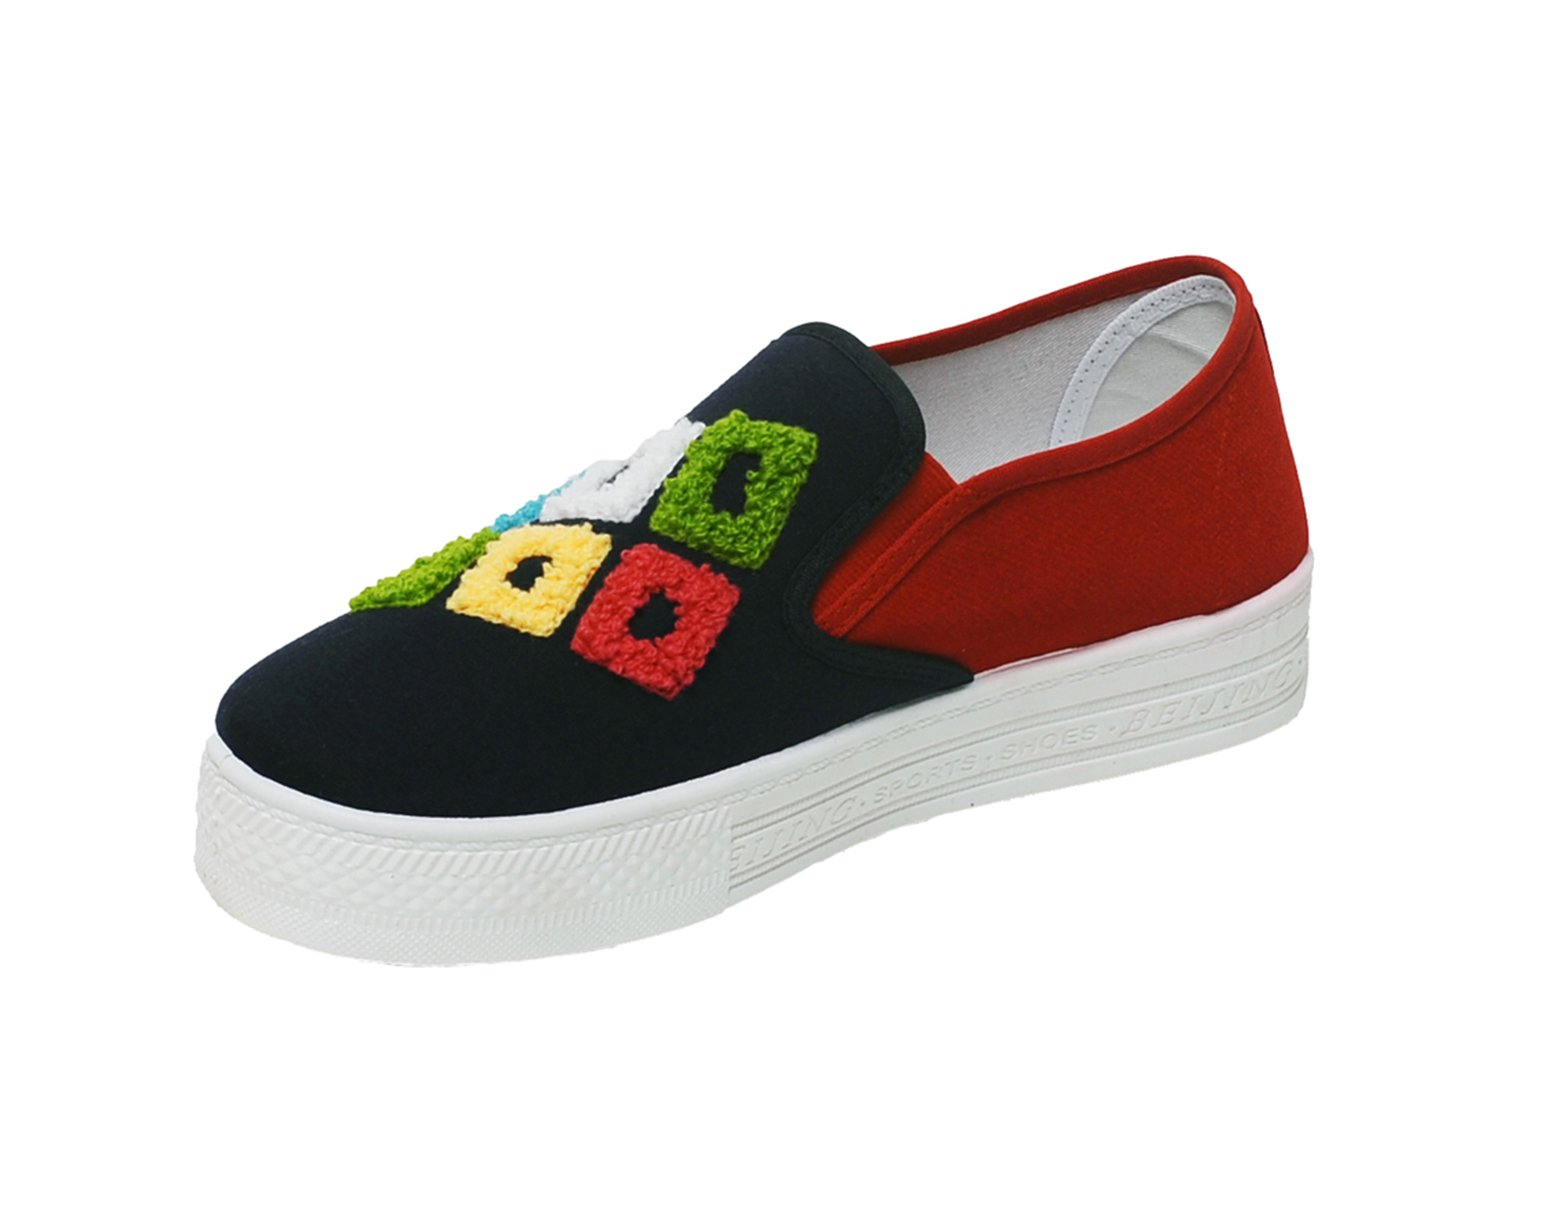 AUGA Rock Style Classic Graffiti Doodle Slip On Low Top Canvas Fashion Sneaker Casual Platform Flat Shoe For Women(Red,7.5 B(M))